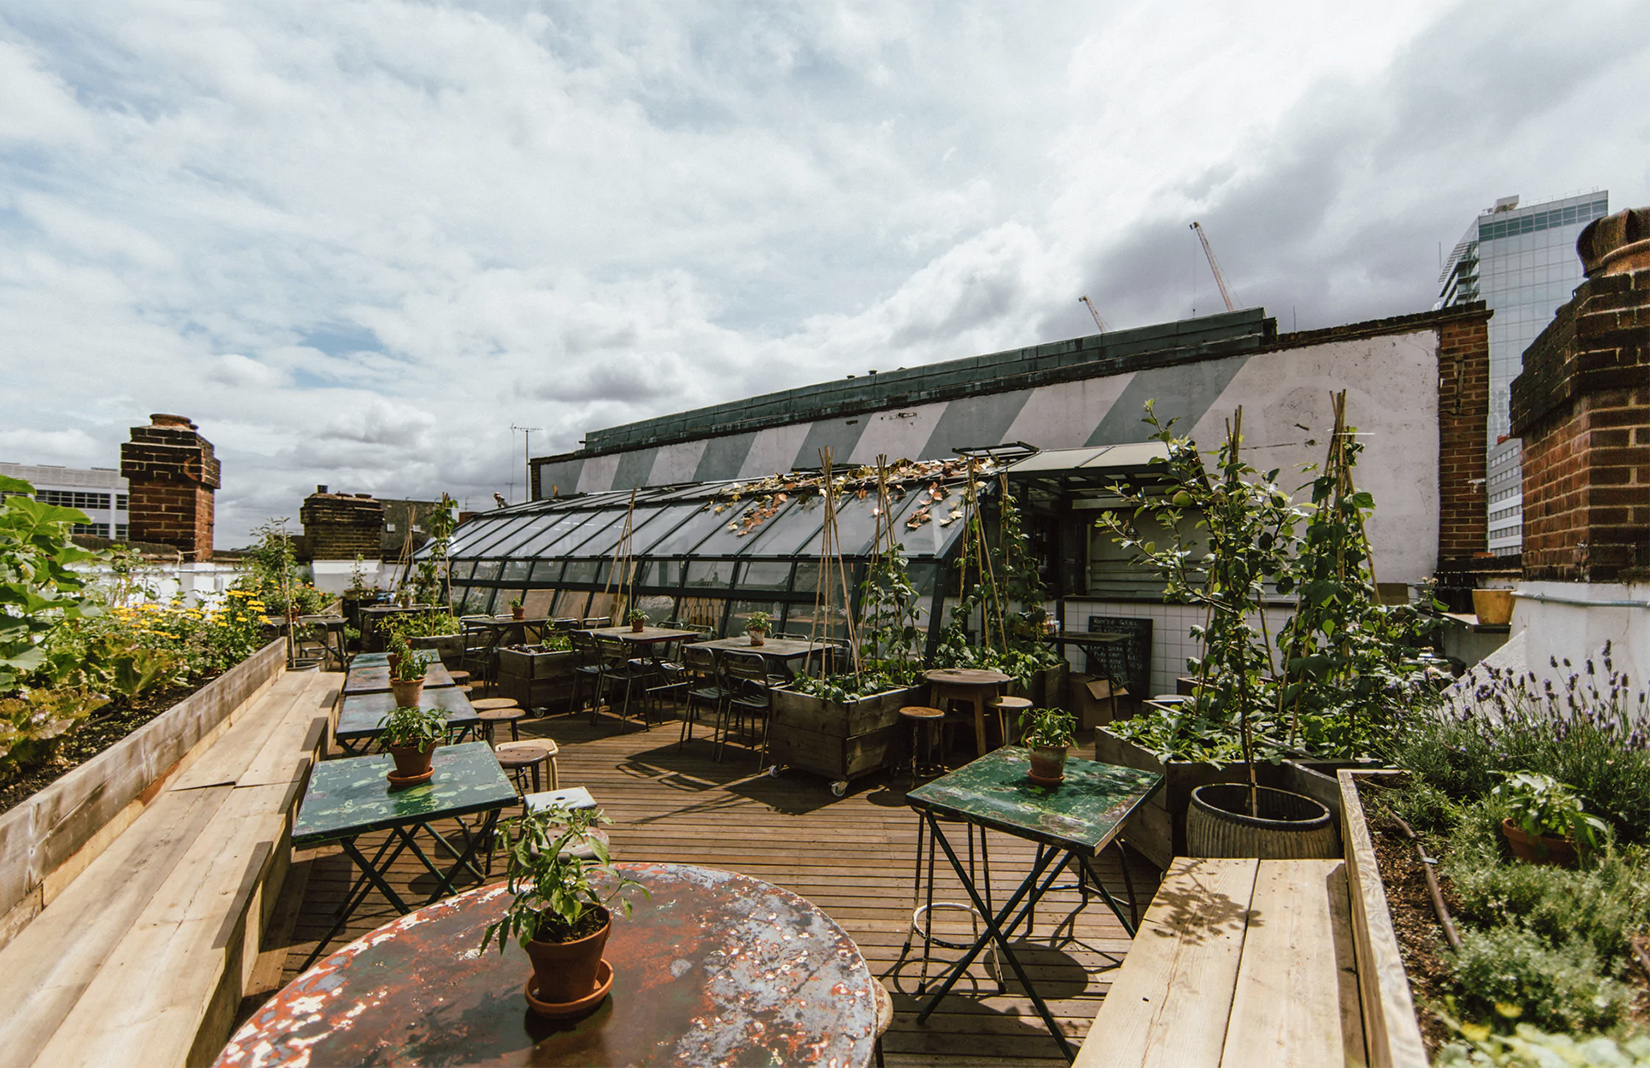 9 Of The Best Rooftop Bars In London This Summer